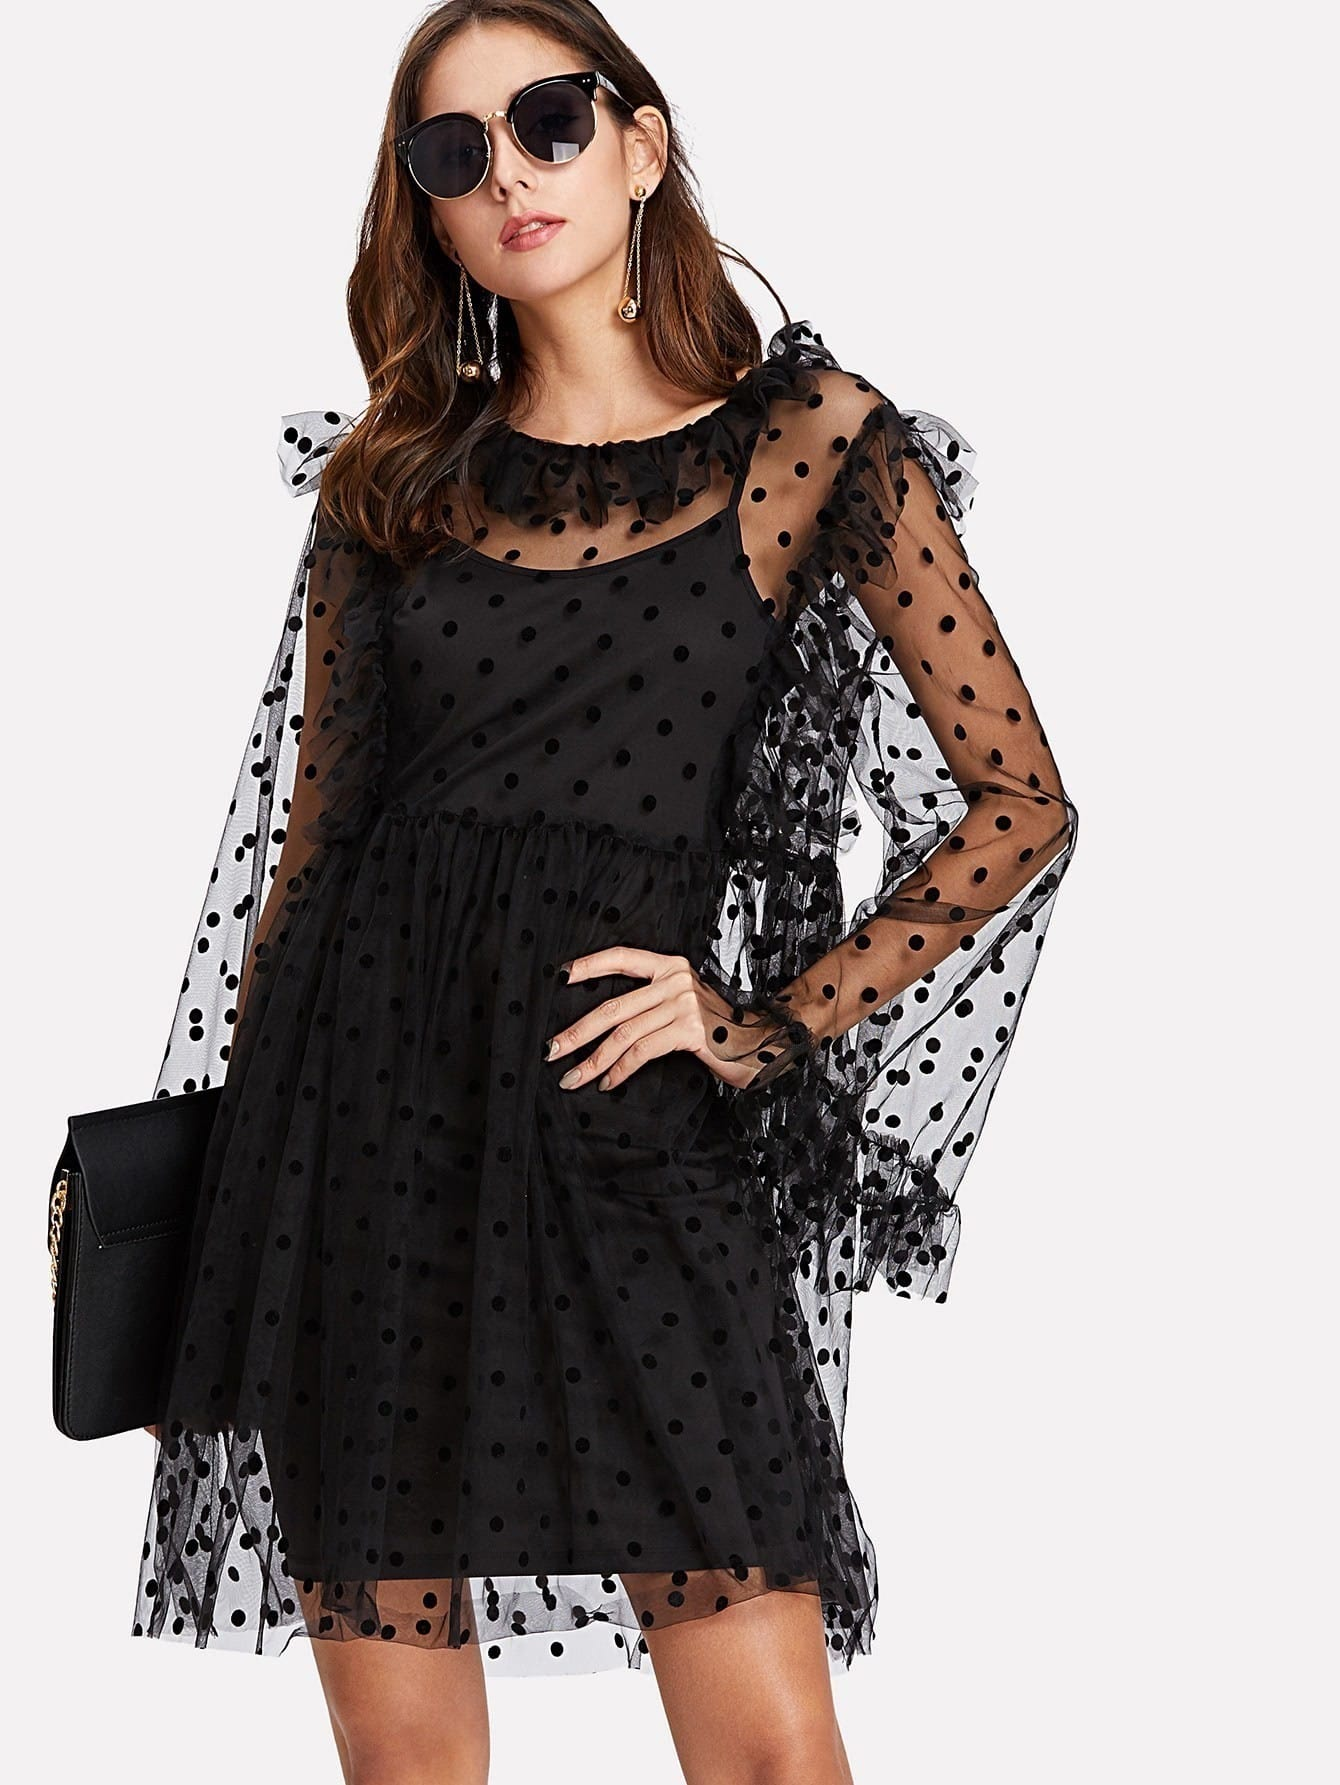 Dot Mesh Overlay Frill Detail Dress Set pearl detail frill off shoulder dress